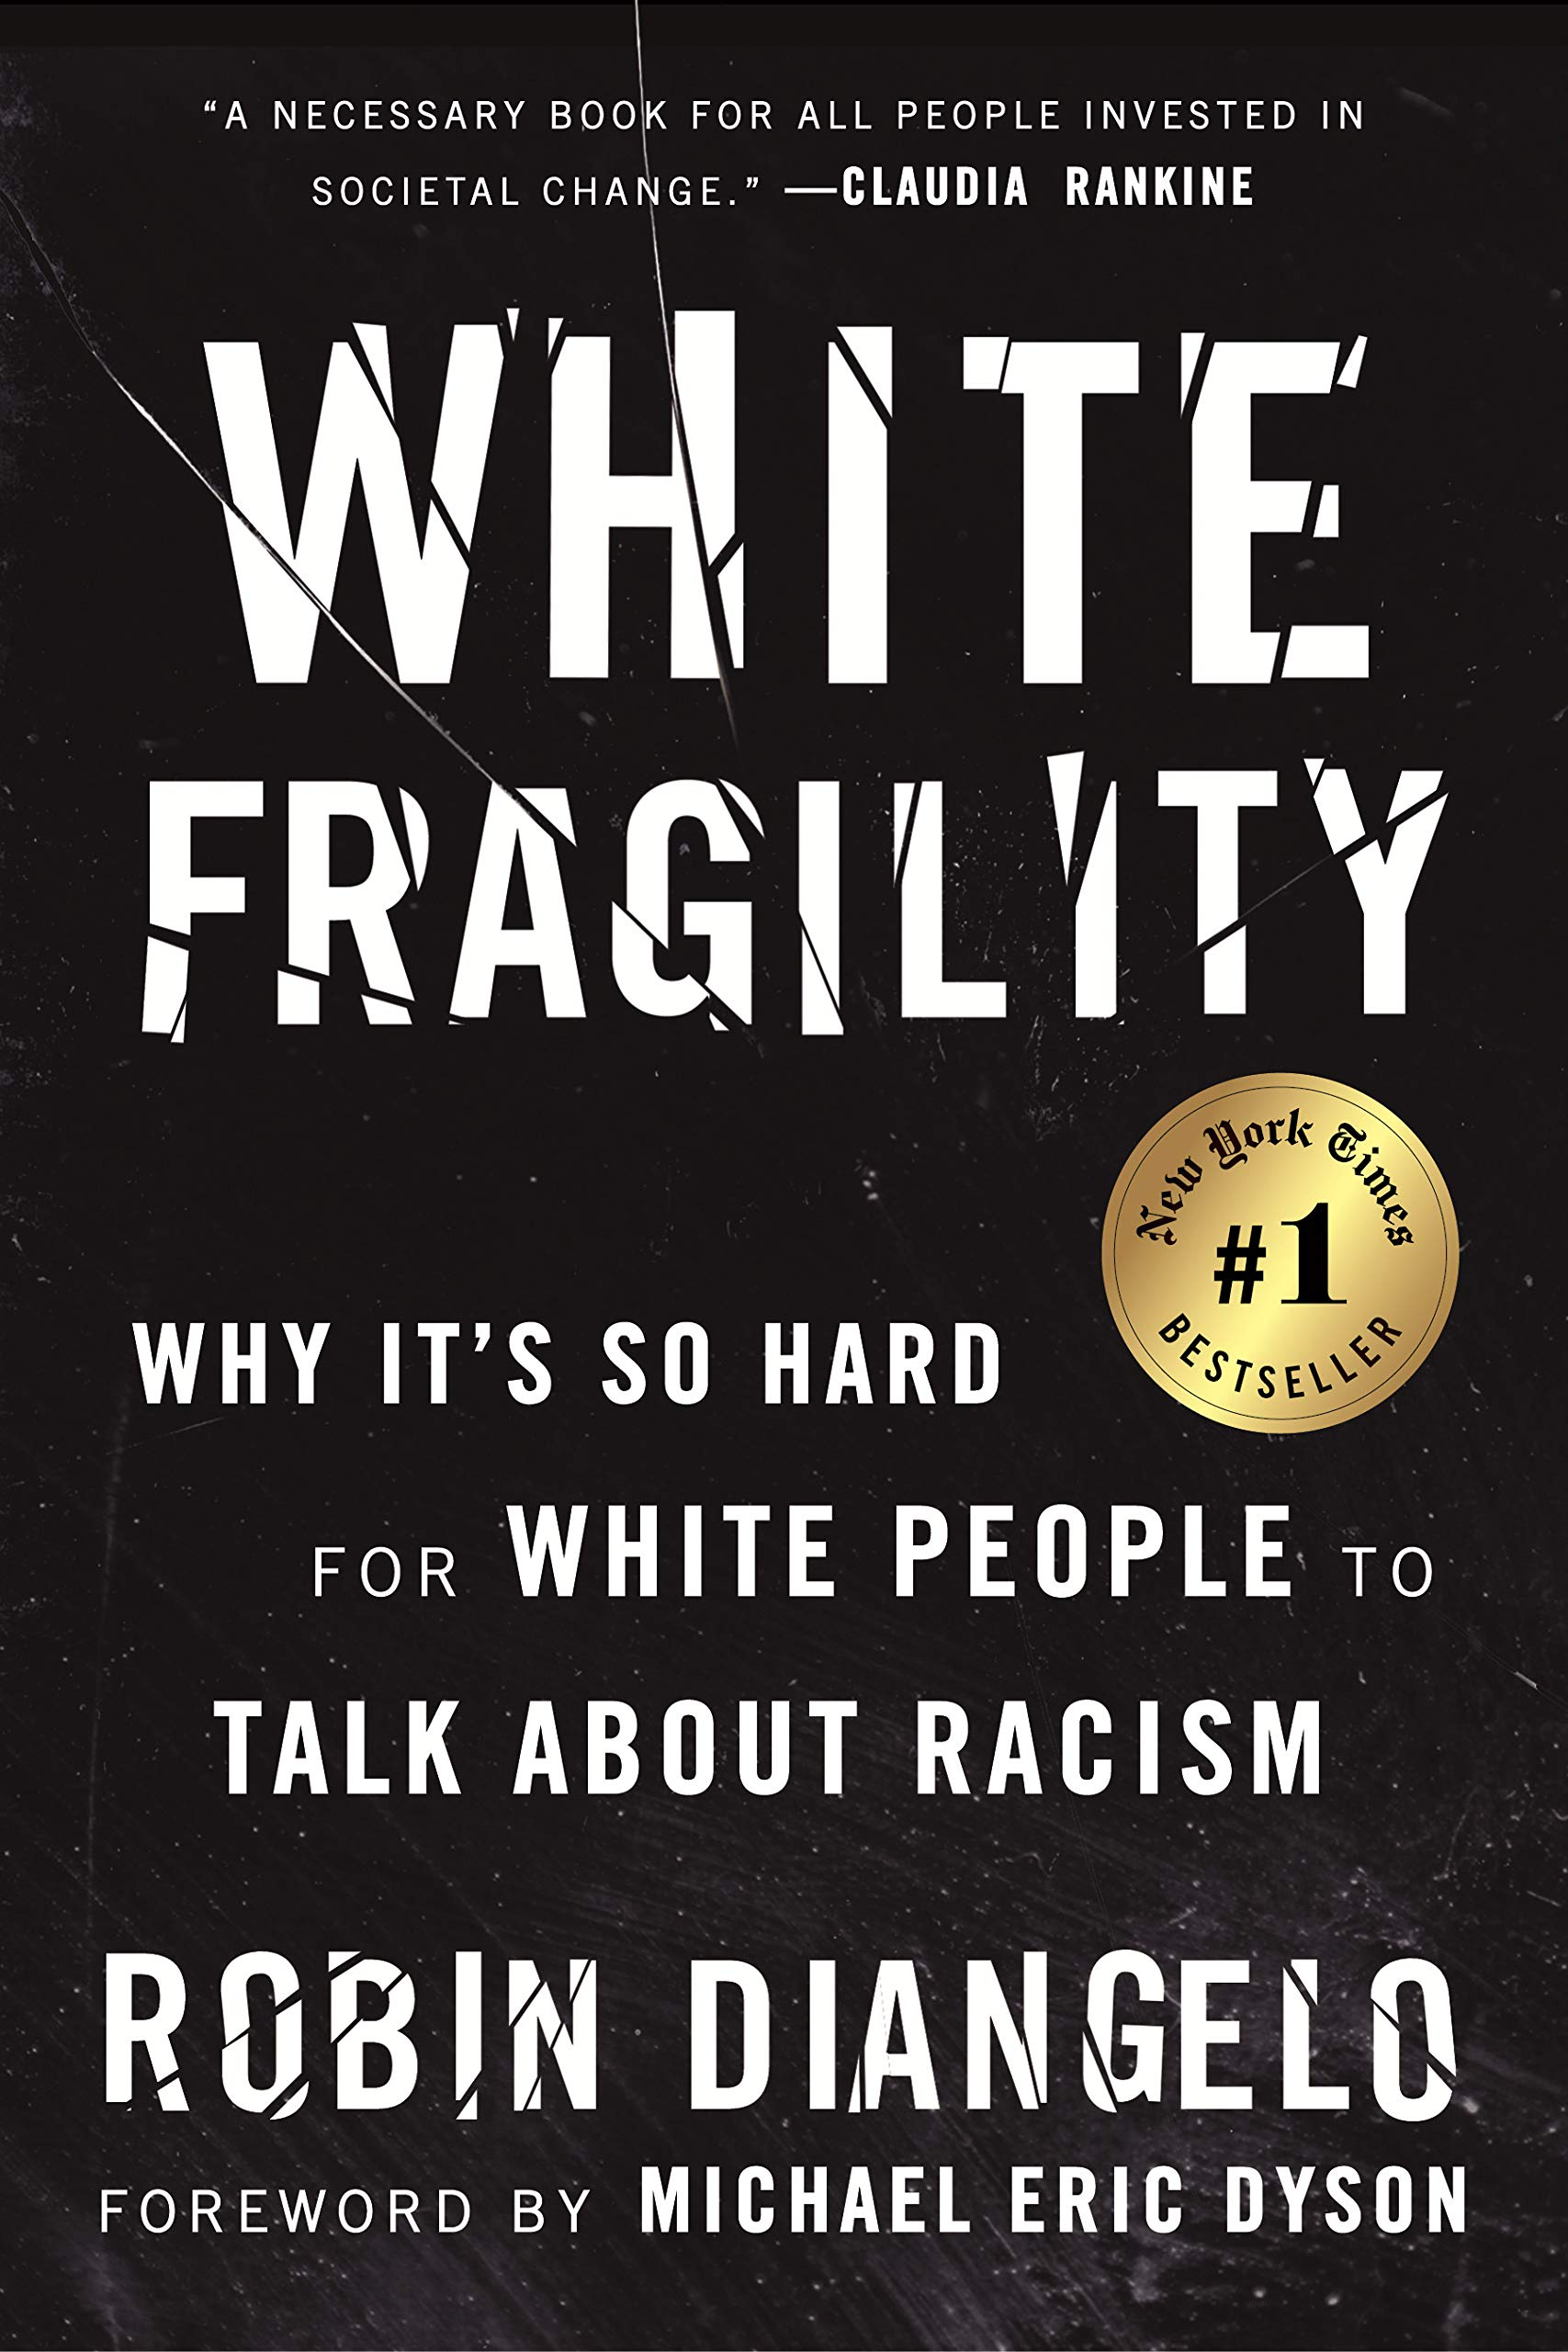 White Fragility: Why It's So Hard for White People to Talk About Racism by Robin DiAngelo, PhD